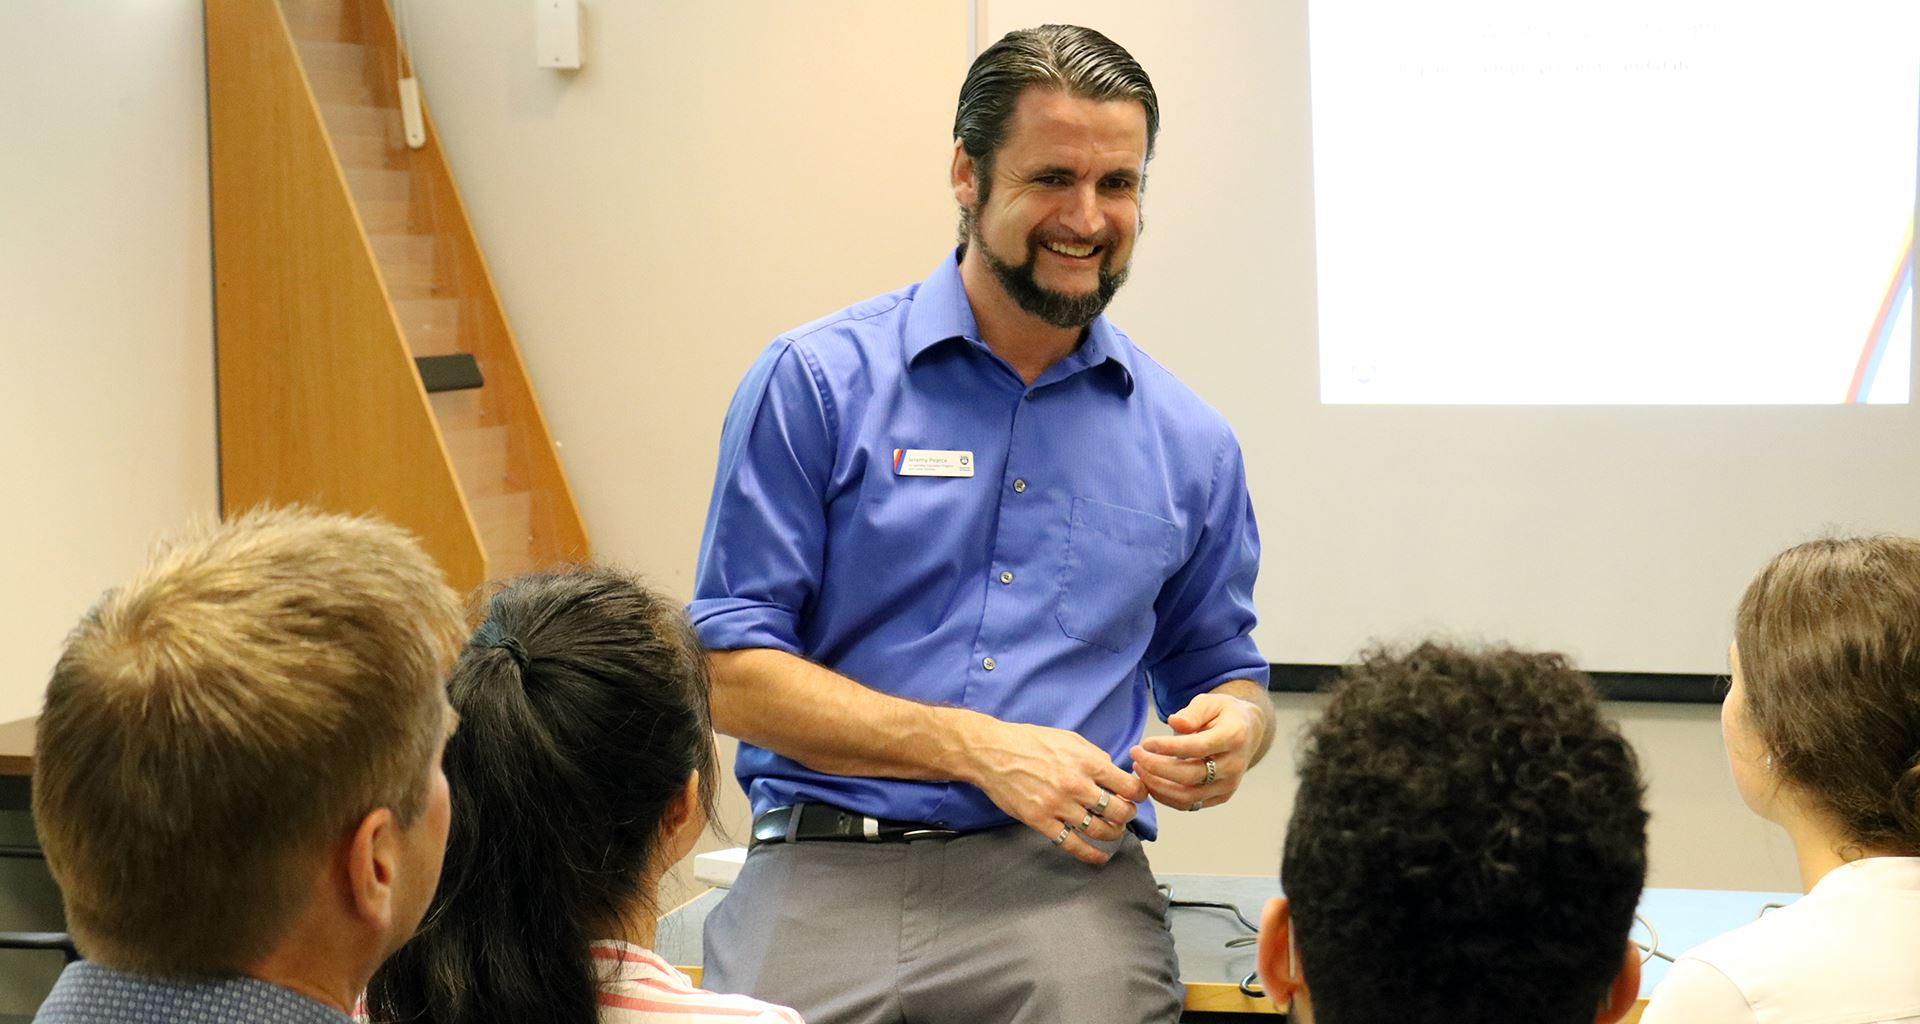 Career Educator engages with students at a career skills workshop.